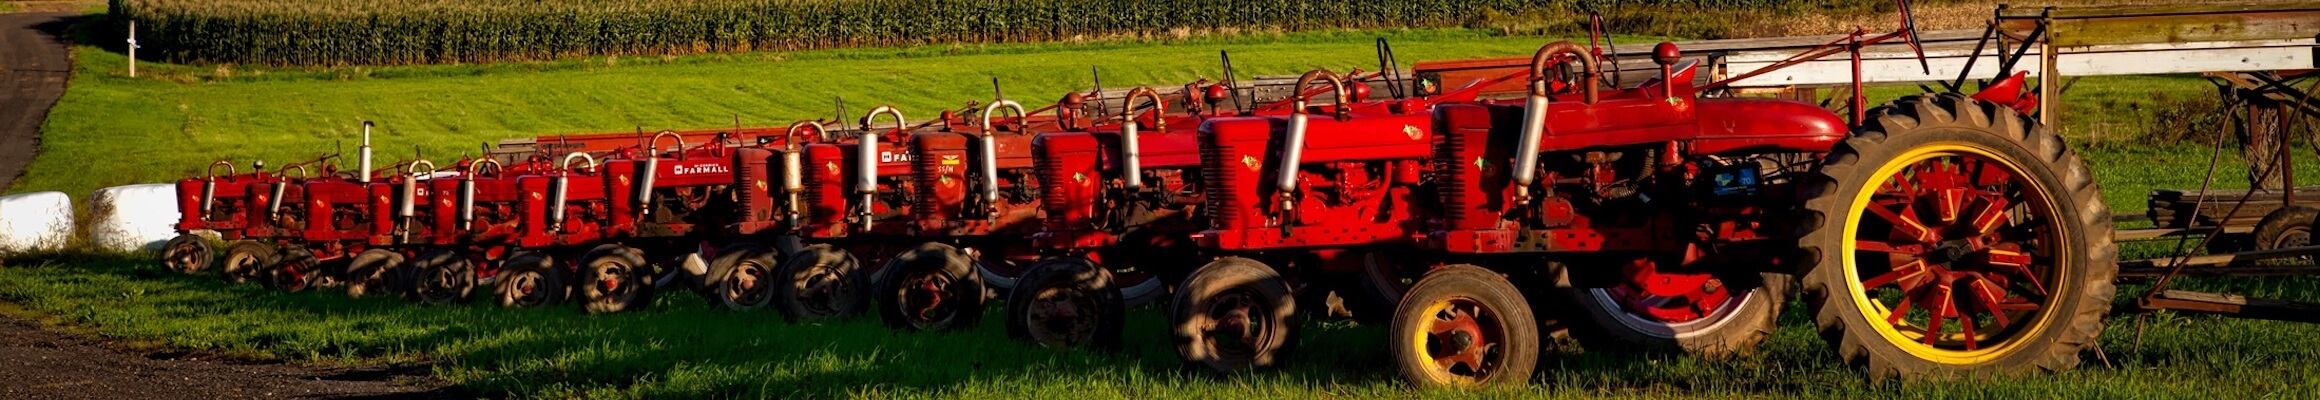 Red Tractor 03